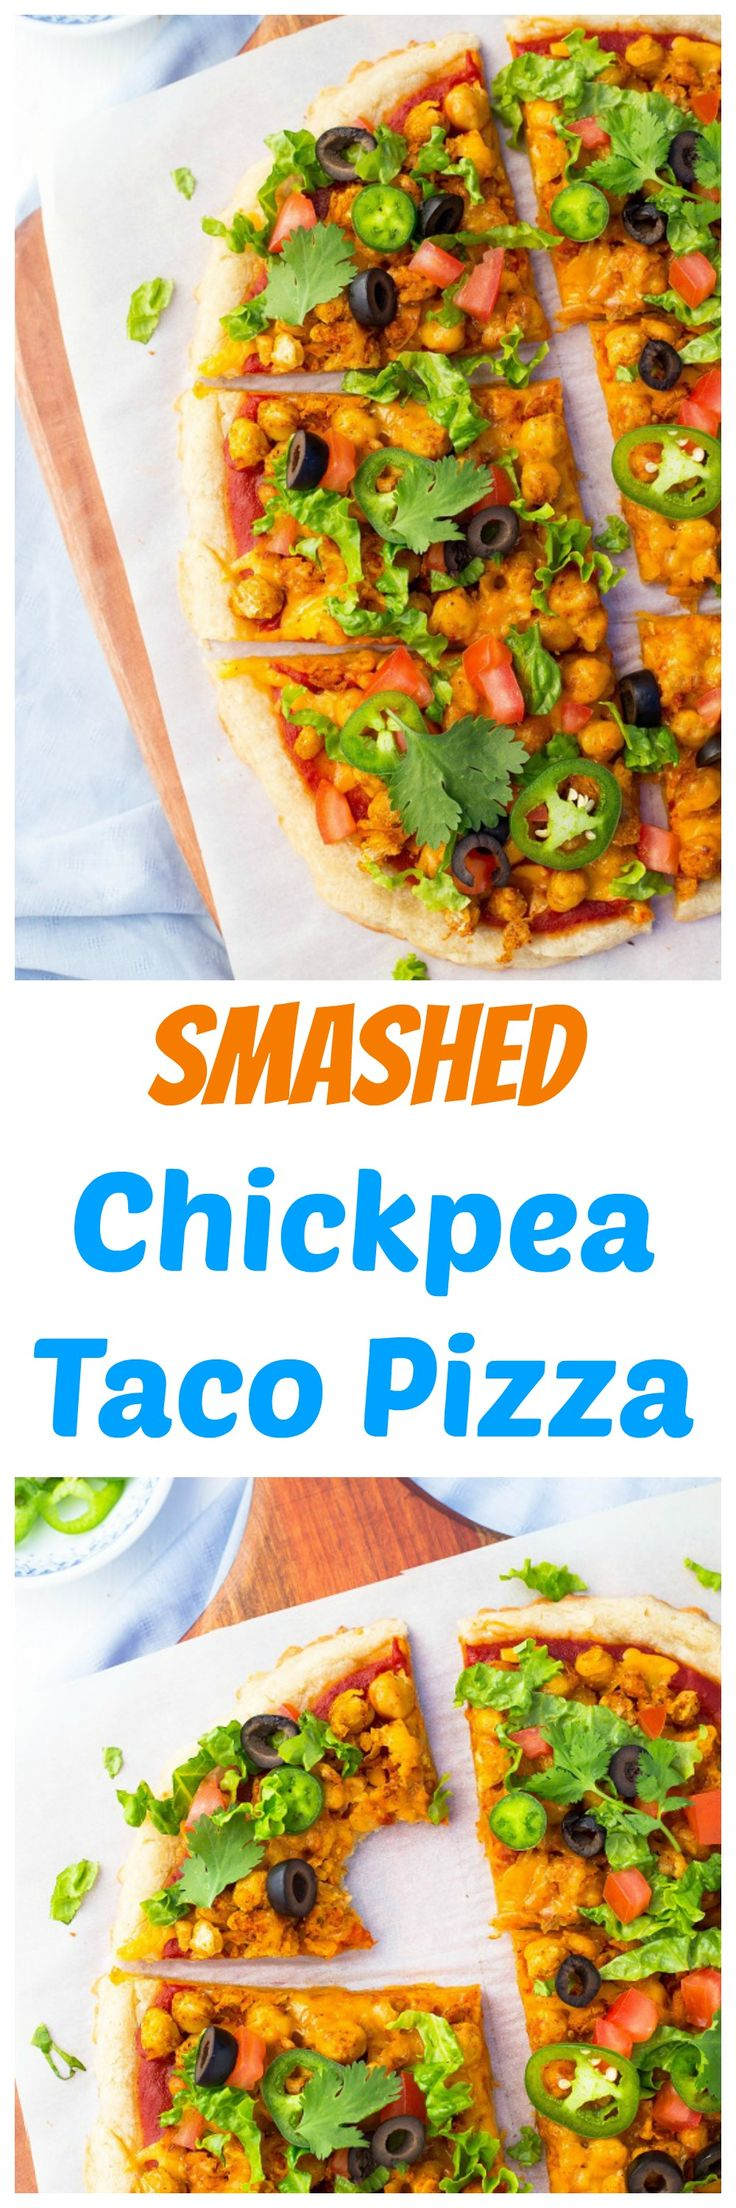 Smashed Chickpea Taco Pizza! The most delicious vegetarian pizza you will ever eat!! {gluten free, vegetarian}